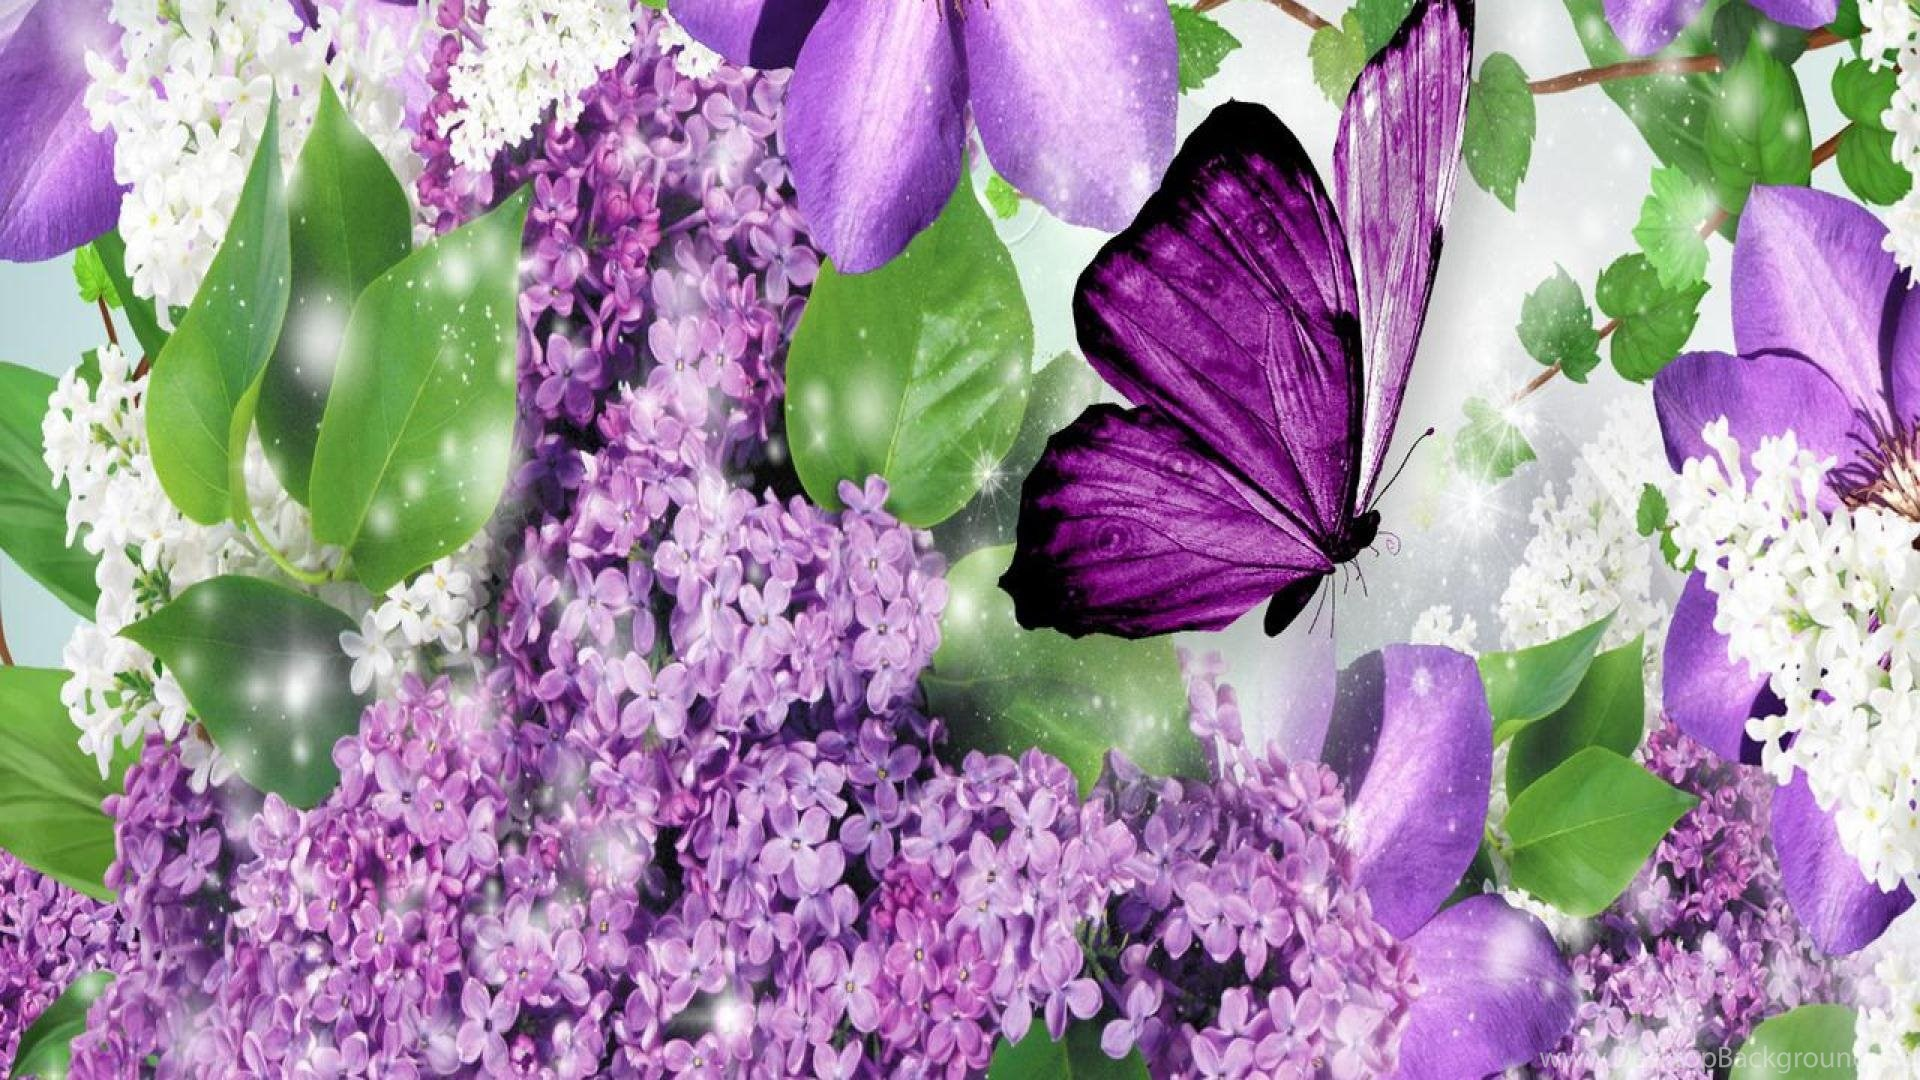 Best Wallpaper High Quality Butterfly - 820417_download-free-250-high-quality-butterfly-wallpapers-the-quotes-land_1920x1080_h  Snapshot_521171.jpg